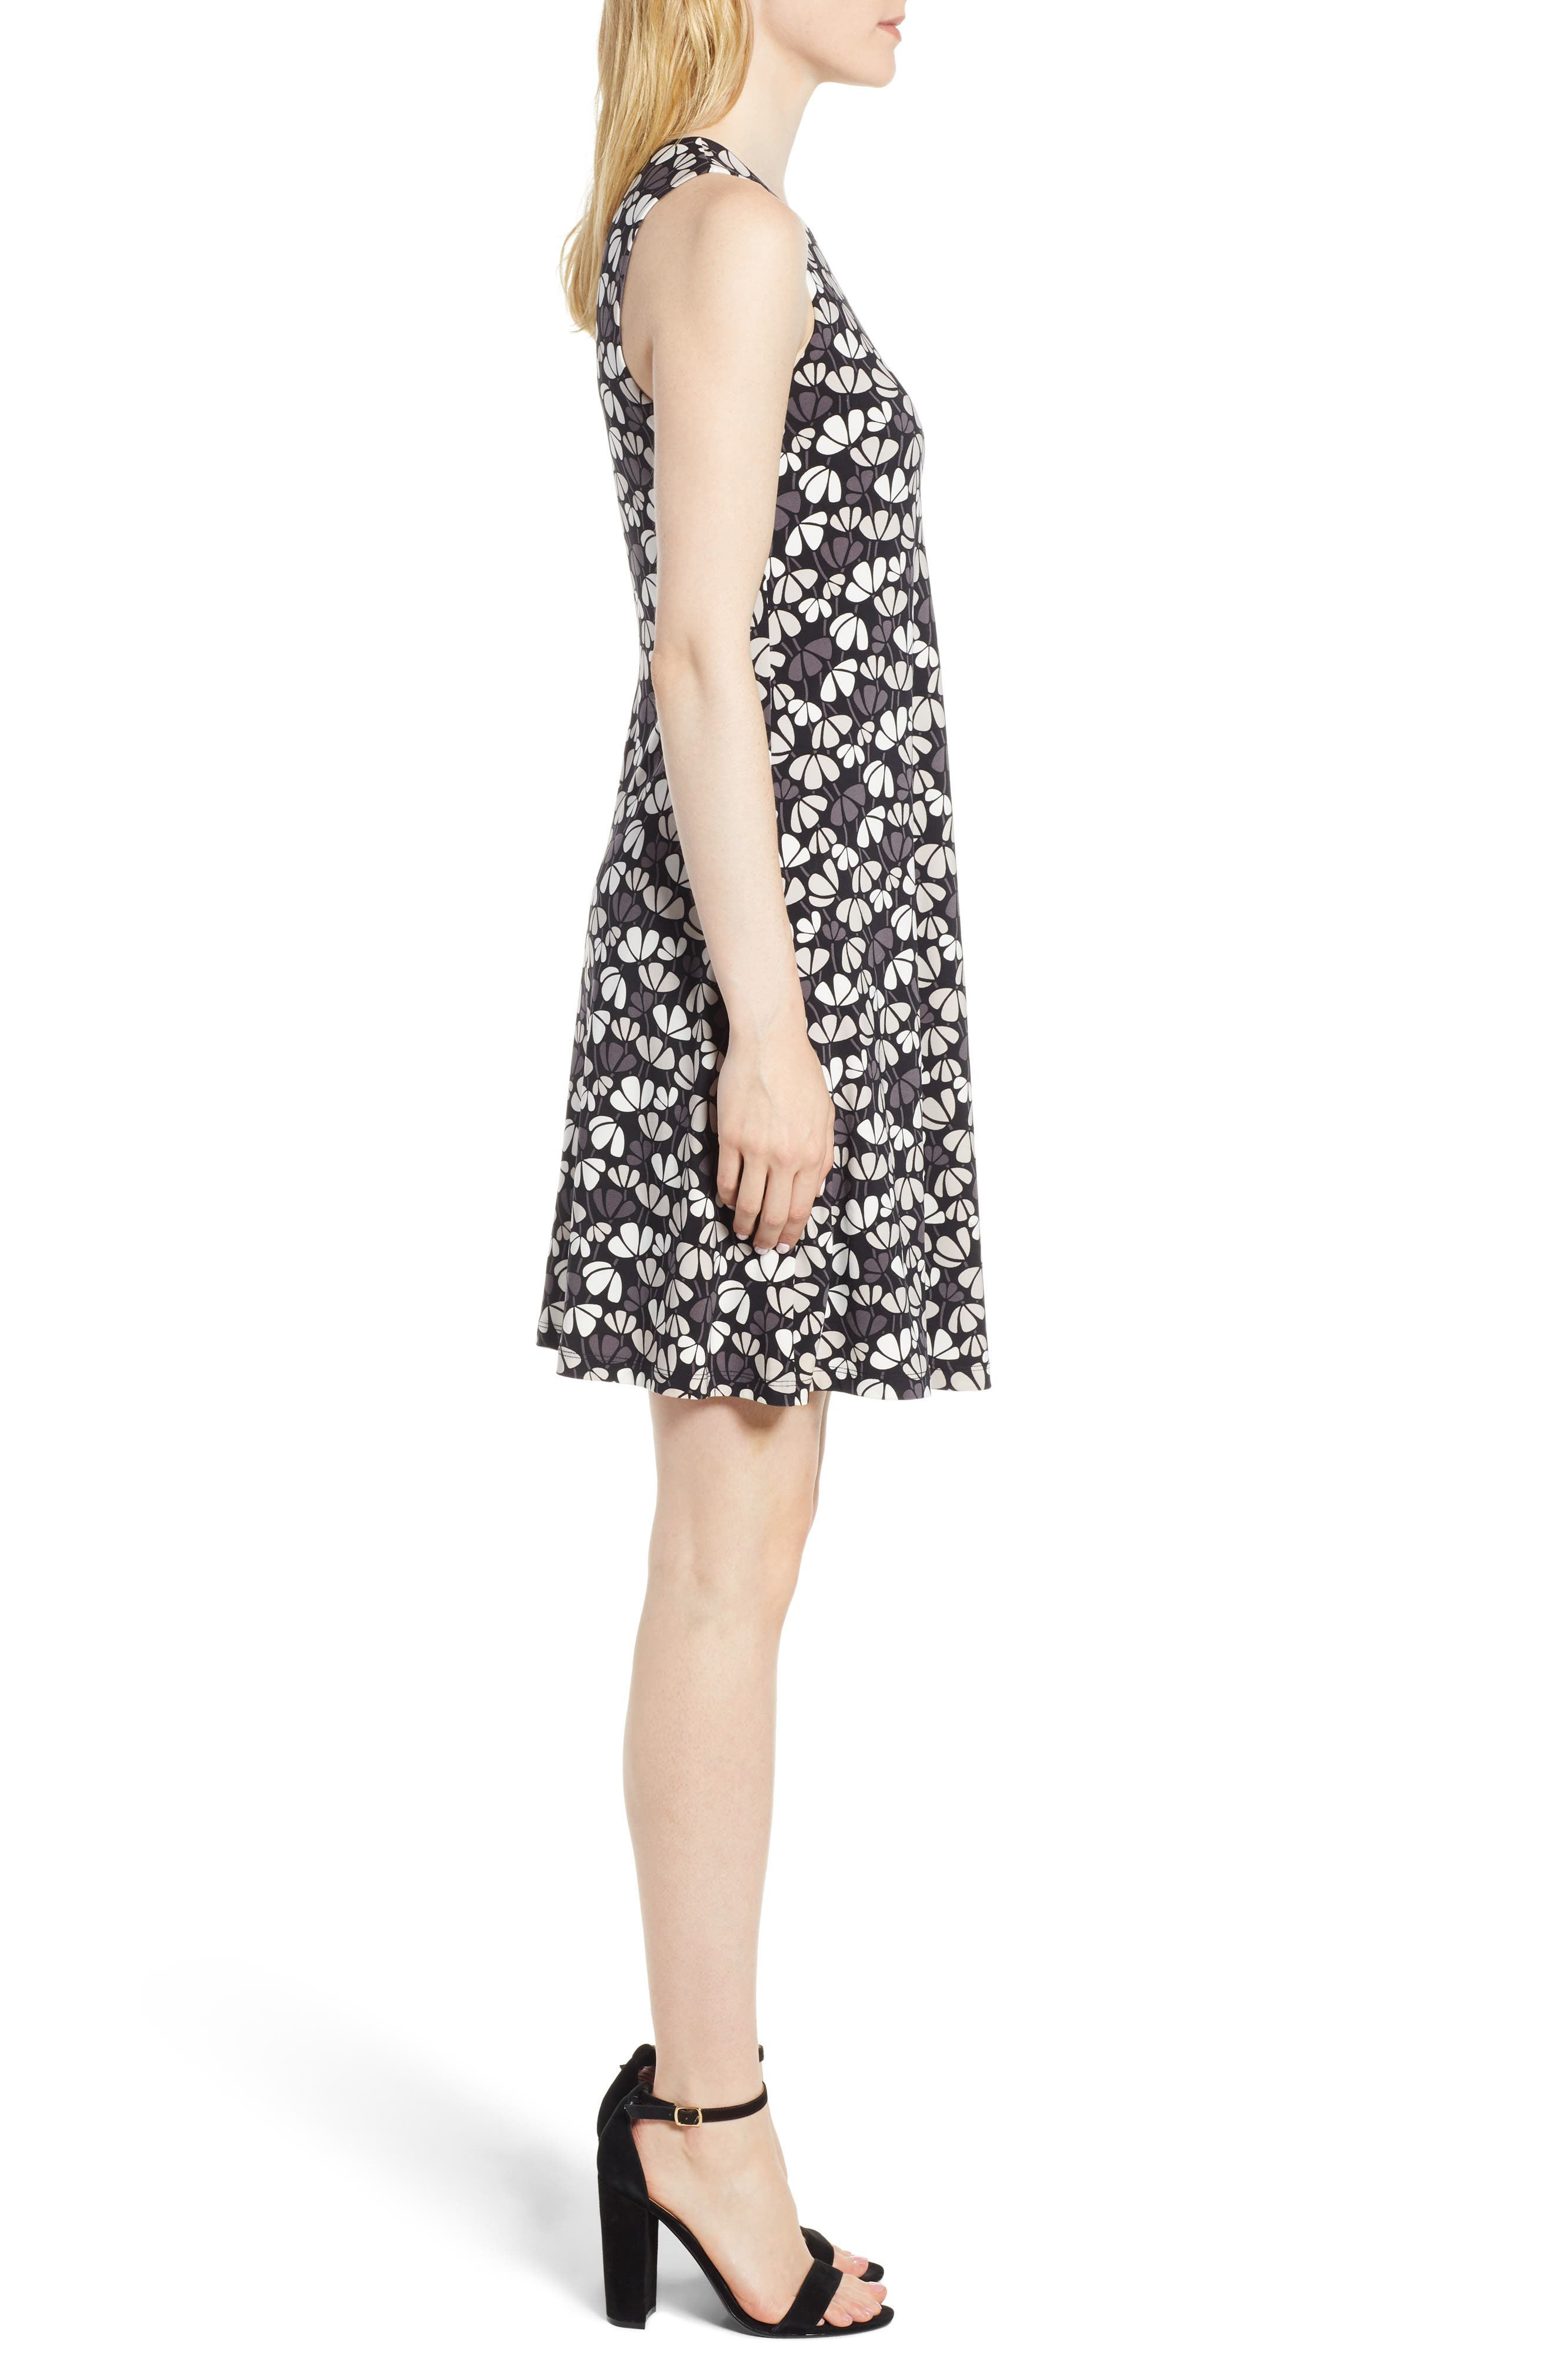 Flowerfall Stretch Knit Swing Dress,                             Alternate thumbnail 3, color,                             Black/ Oyster Shell Combo